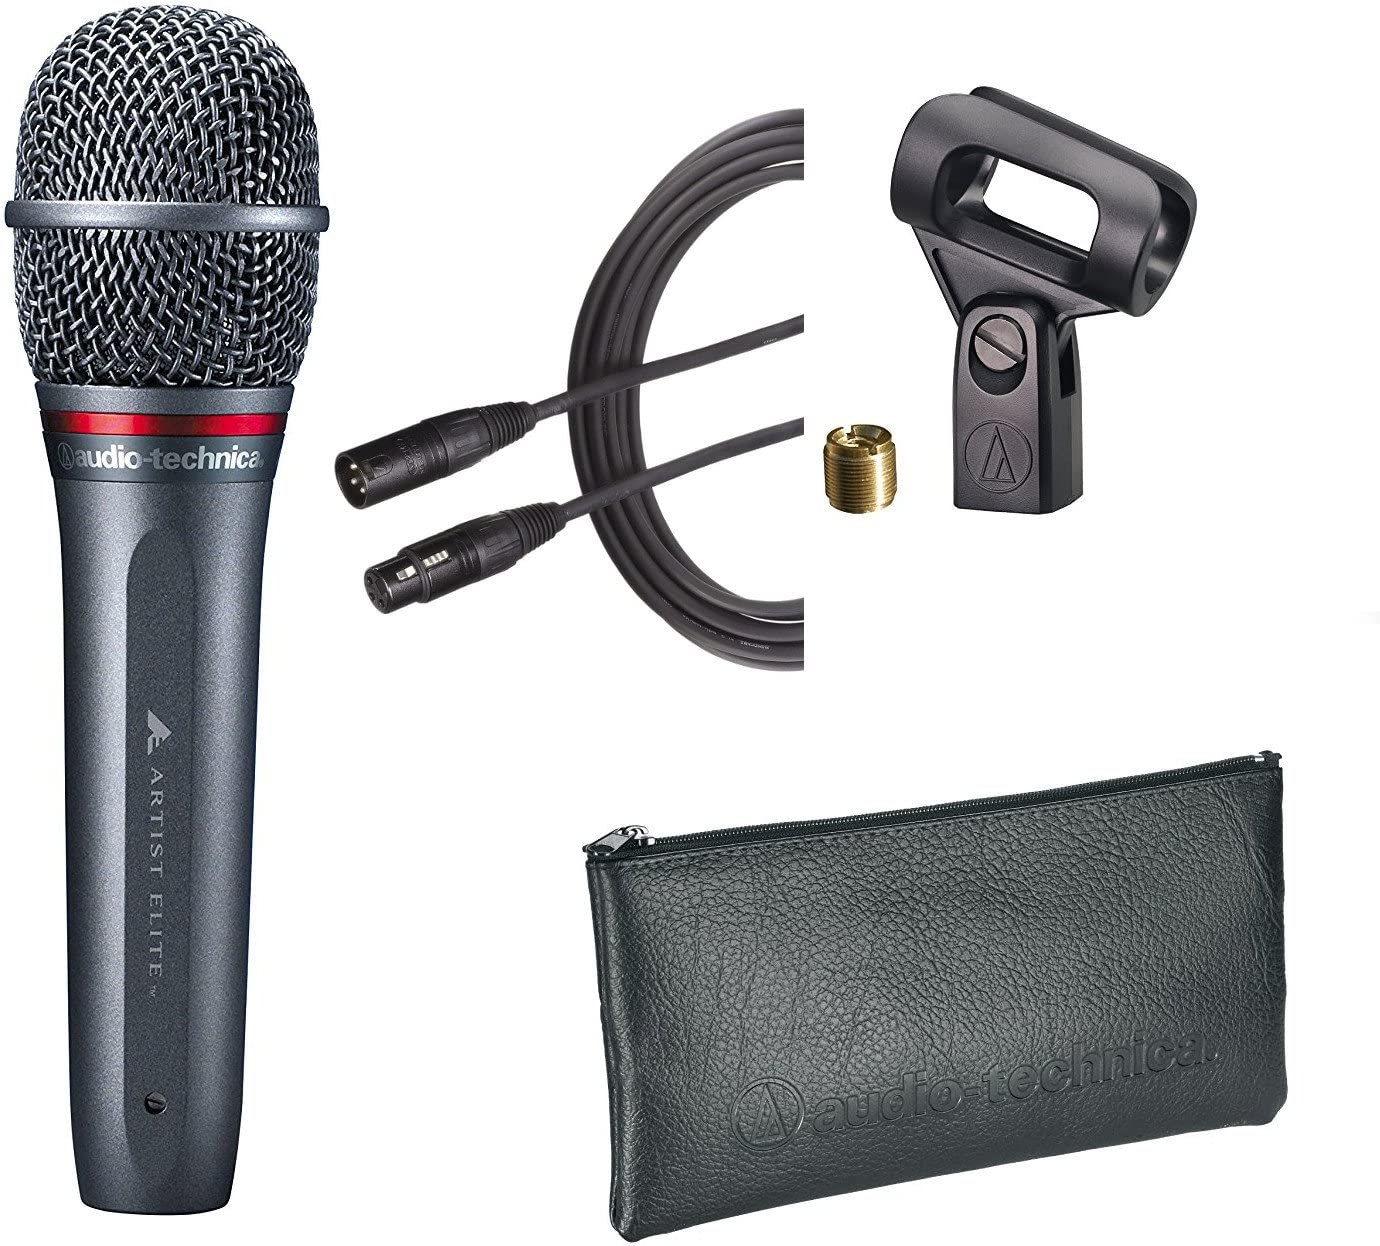 Audio Technica National uniform free shipping AE6100 Vocal Dynamic Mic Pouch Max 68% OFF Clip with AT